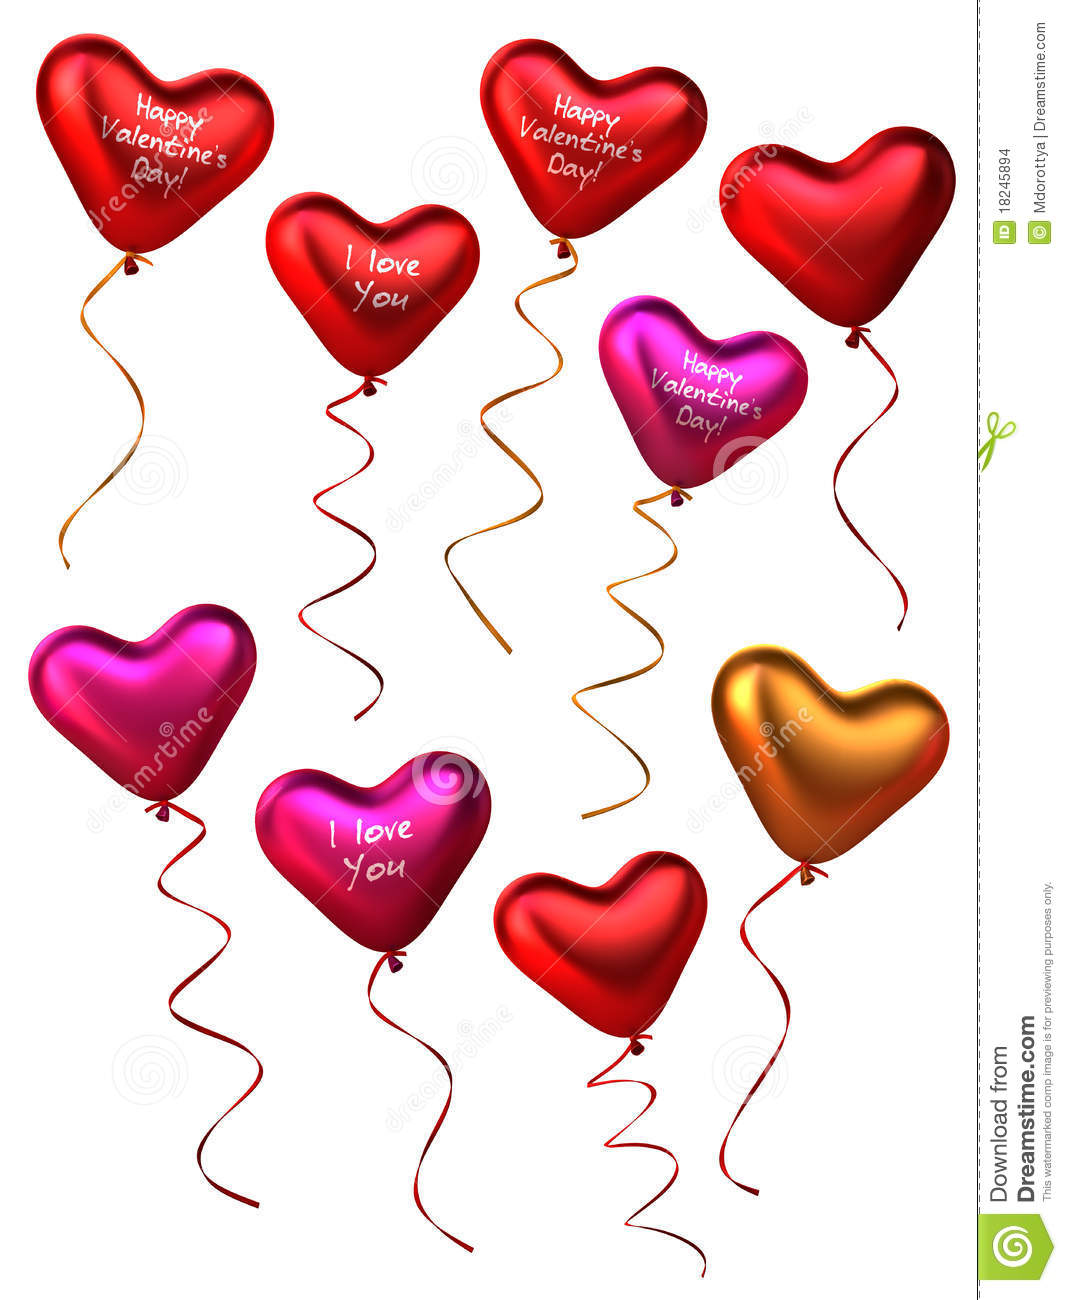 3D Collection Of Heart Shape Balloons Stock Images - Image: 18245894